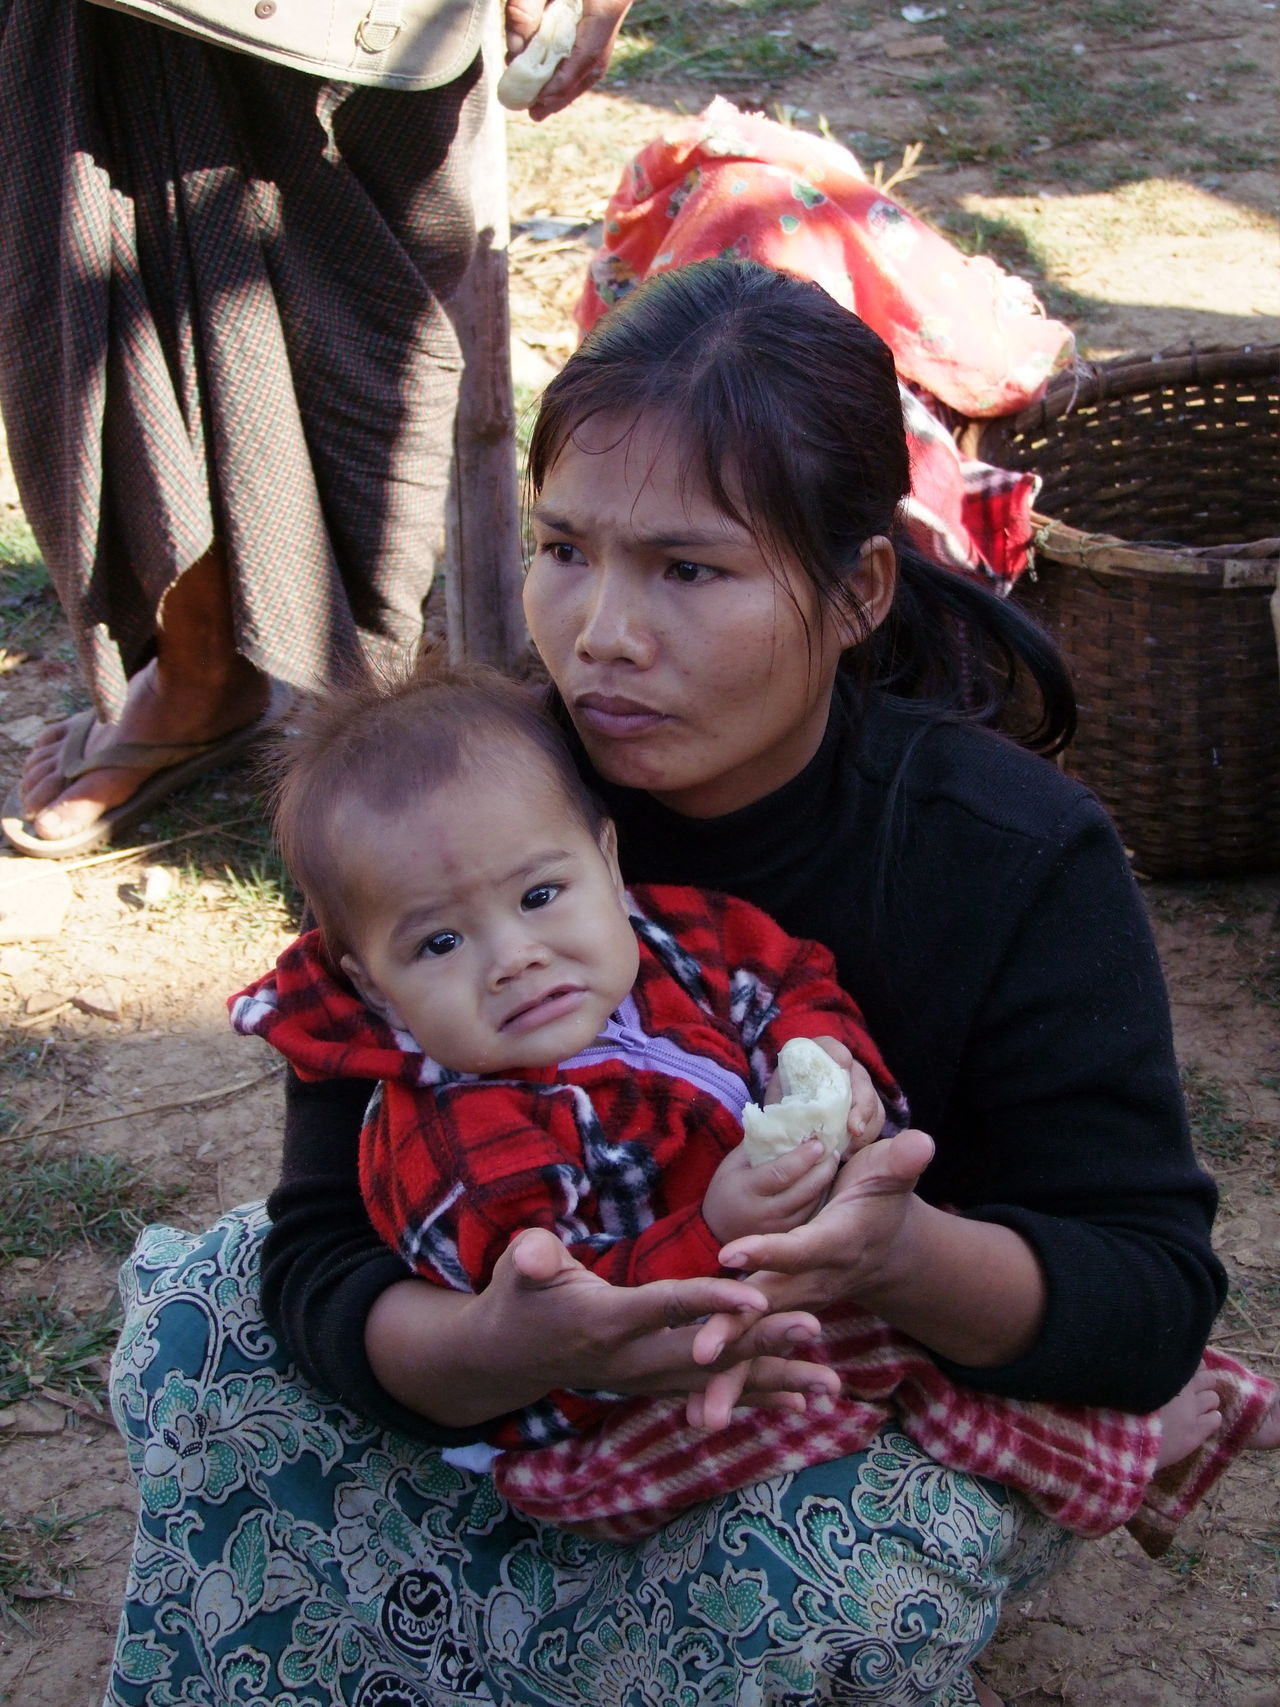 Shan Woman & Child in Market Baby Business Composition Eating Full Frame Inle Lake Making A Living Market Mother Myanmar Offspring Outdoor Photography Portrait Of A Woman Real People Shan State Shan Woman Sunlight And Shade Togetherness Tourism Tourist Attraction  Tourist Destination Traditional Clothing Unhappy Woman And Child